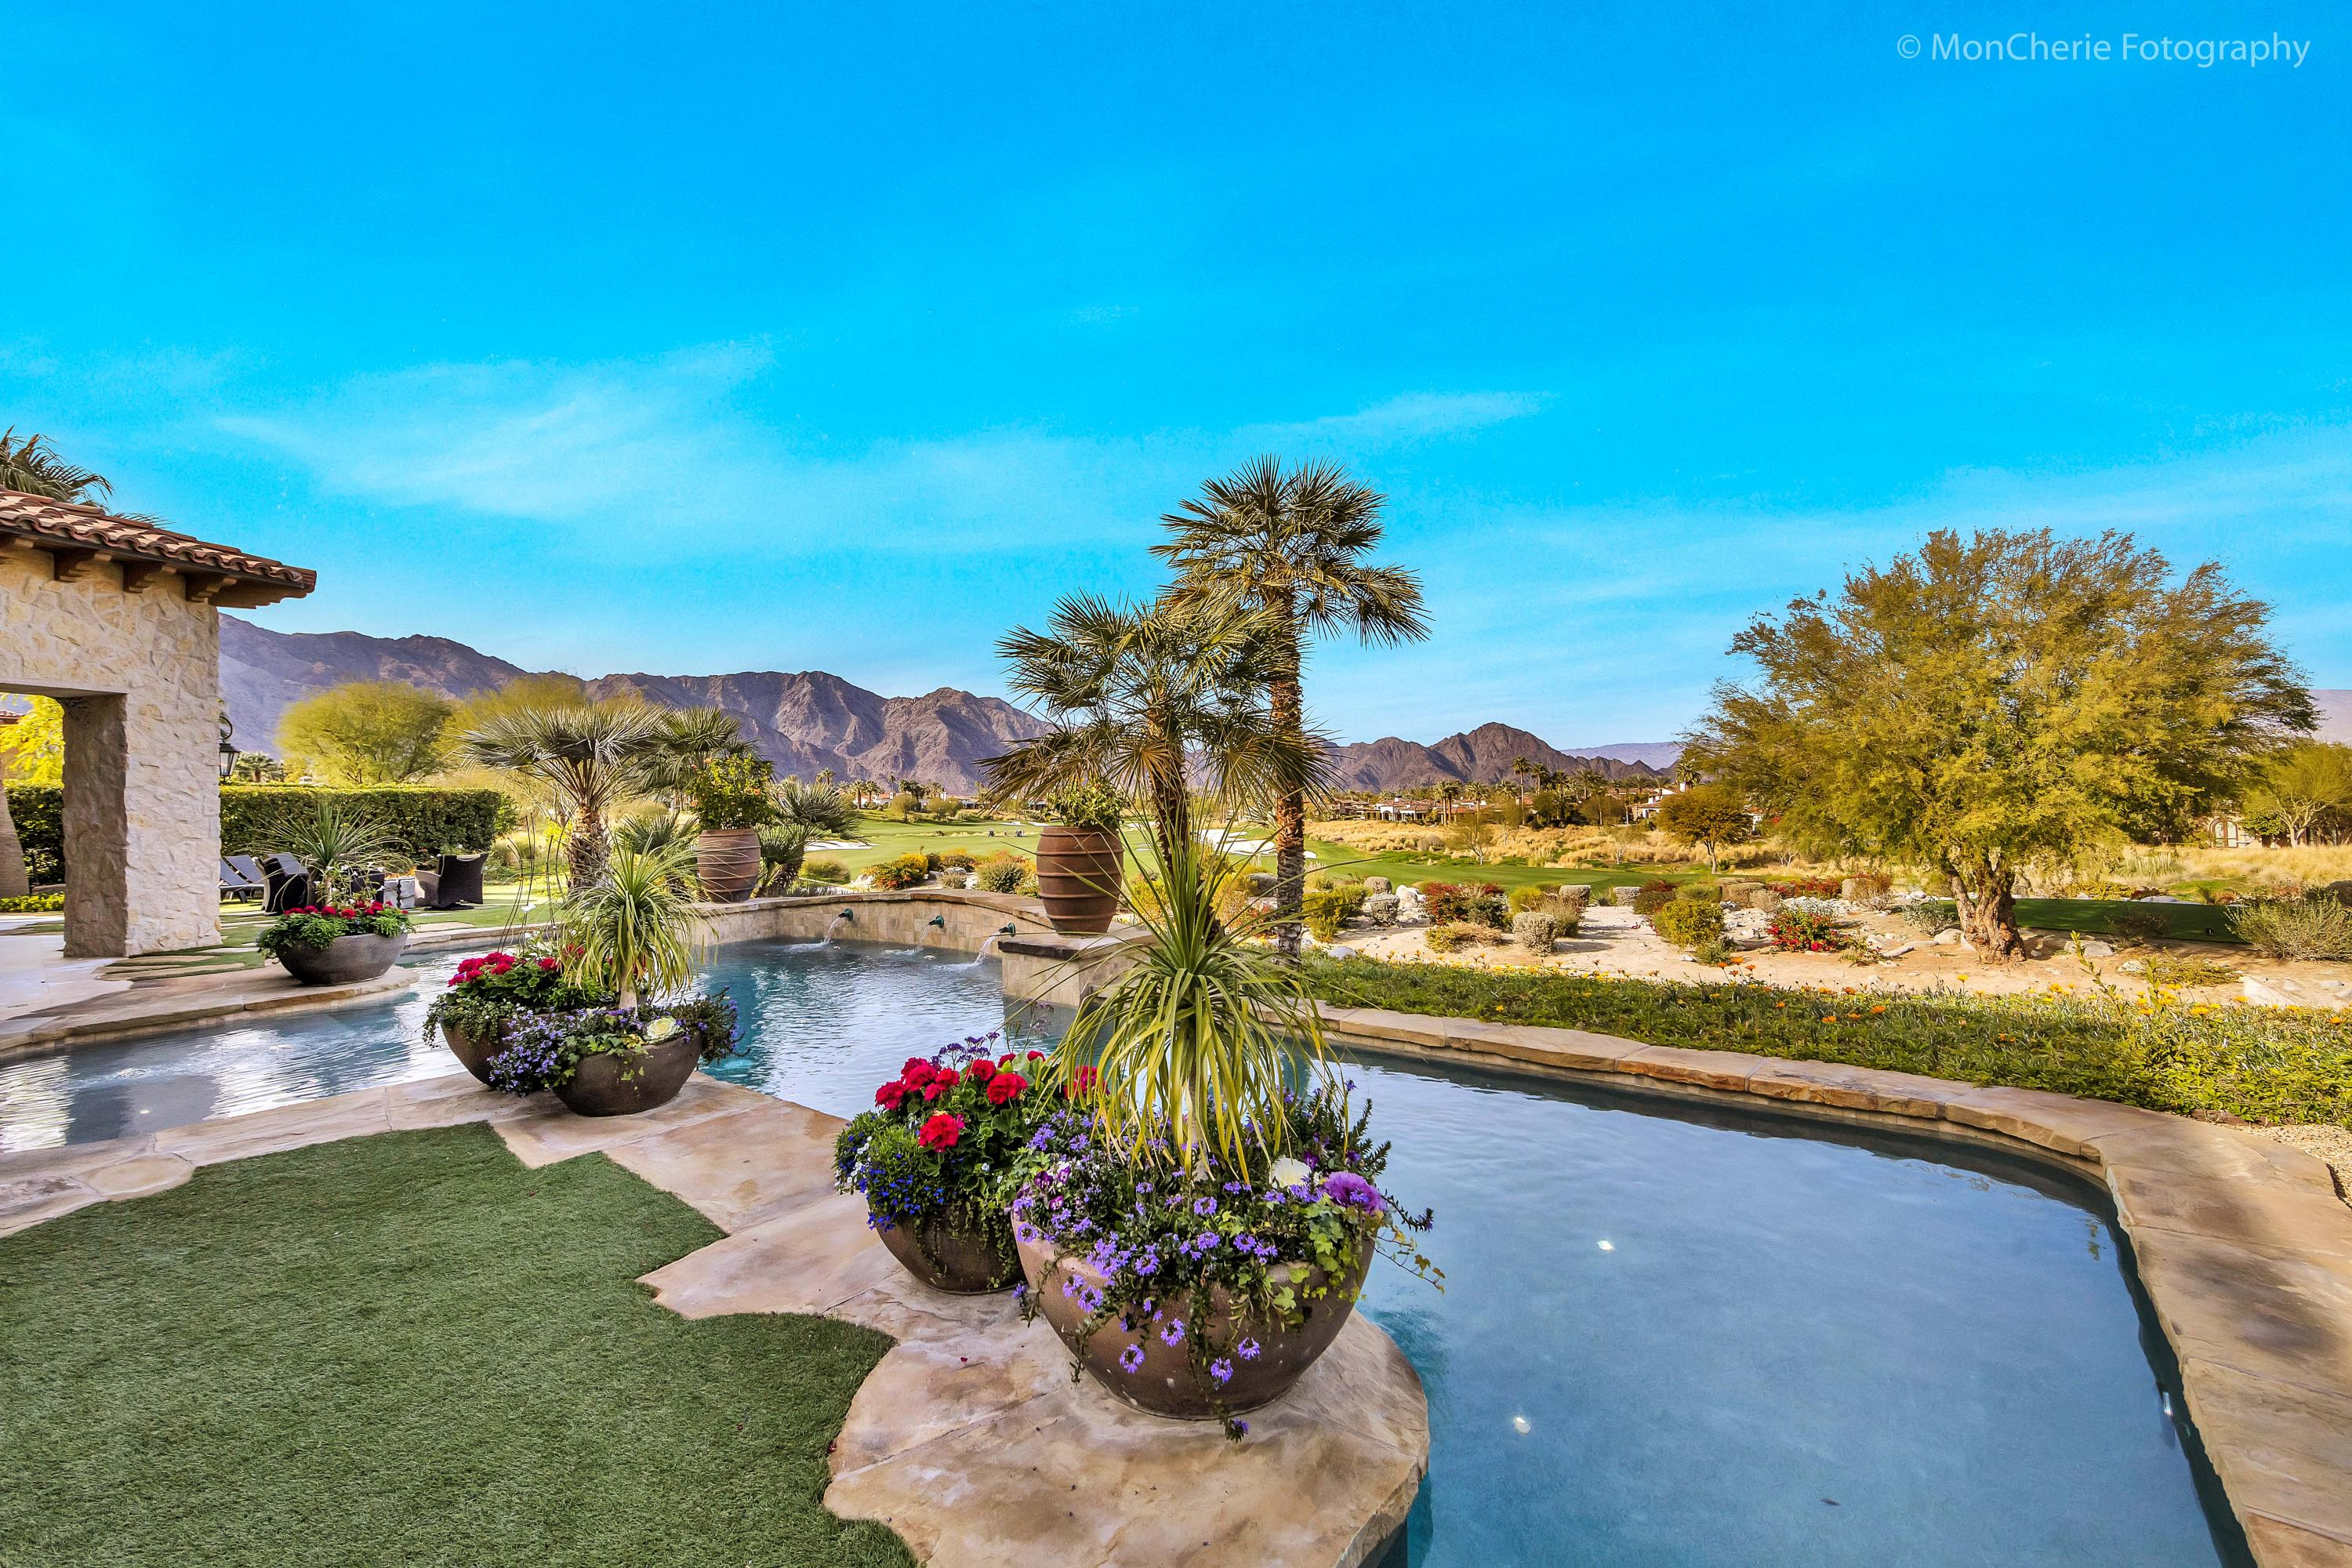 53840 Del Gato Drive, La Quinta, California 92253, 4 Bedrooms Bedrooms, ,7 BathroomsBathrooms,Residential,For Sale,53840 Del Gato Drive,219037597